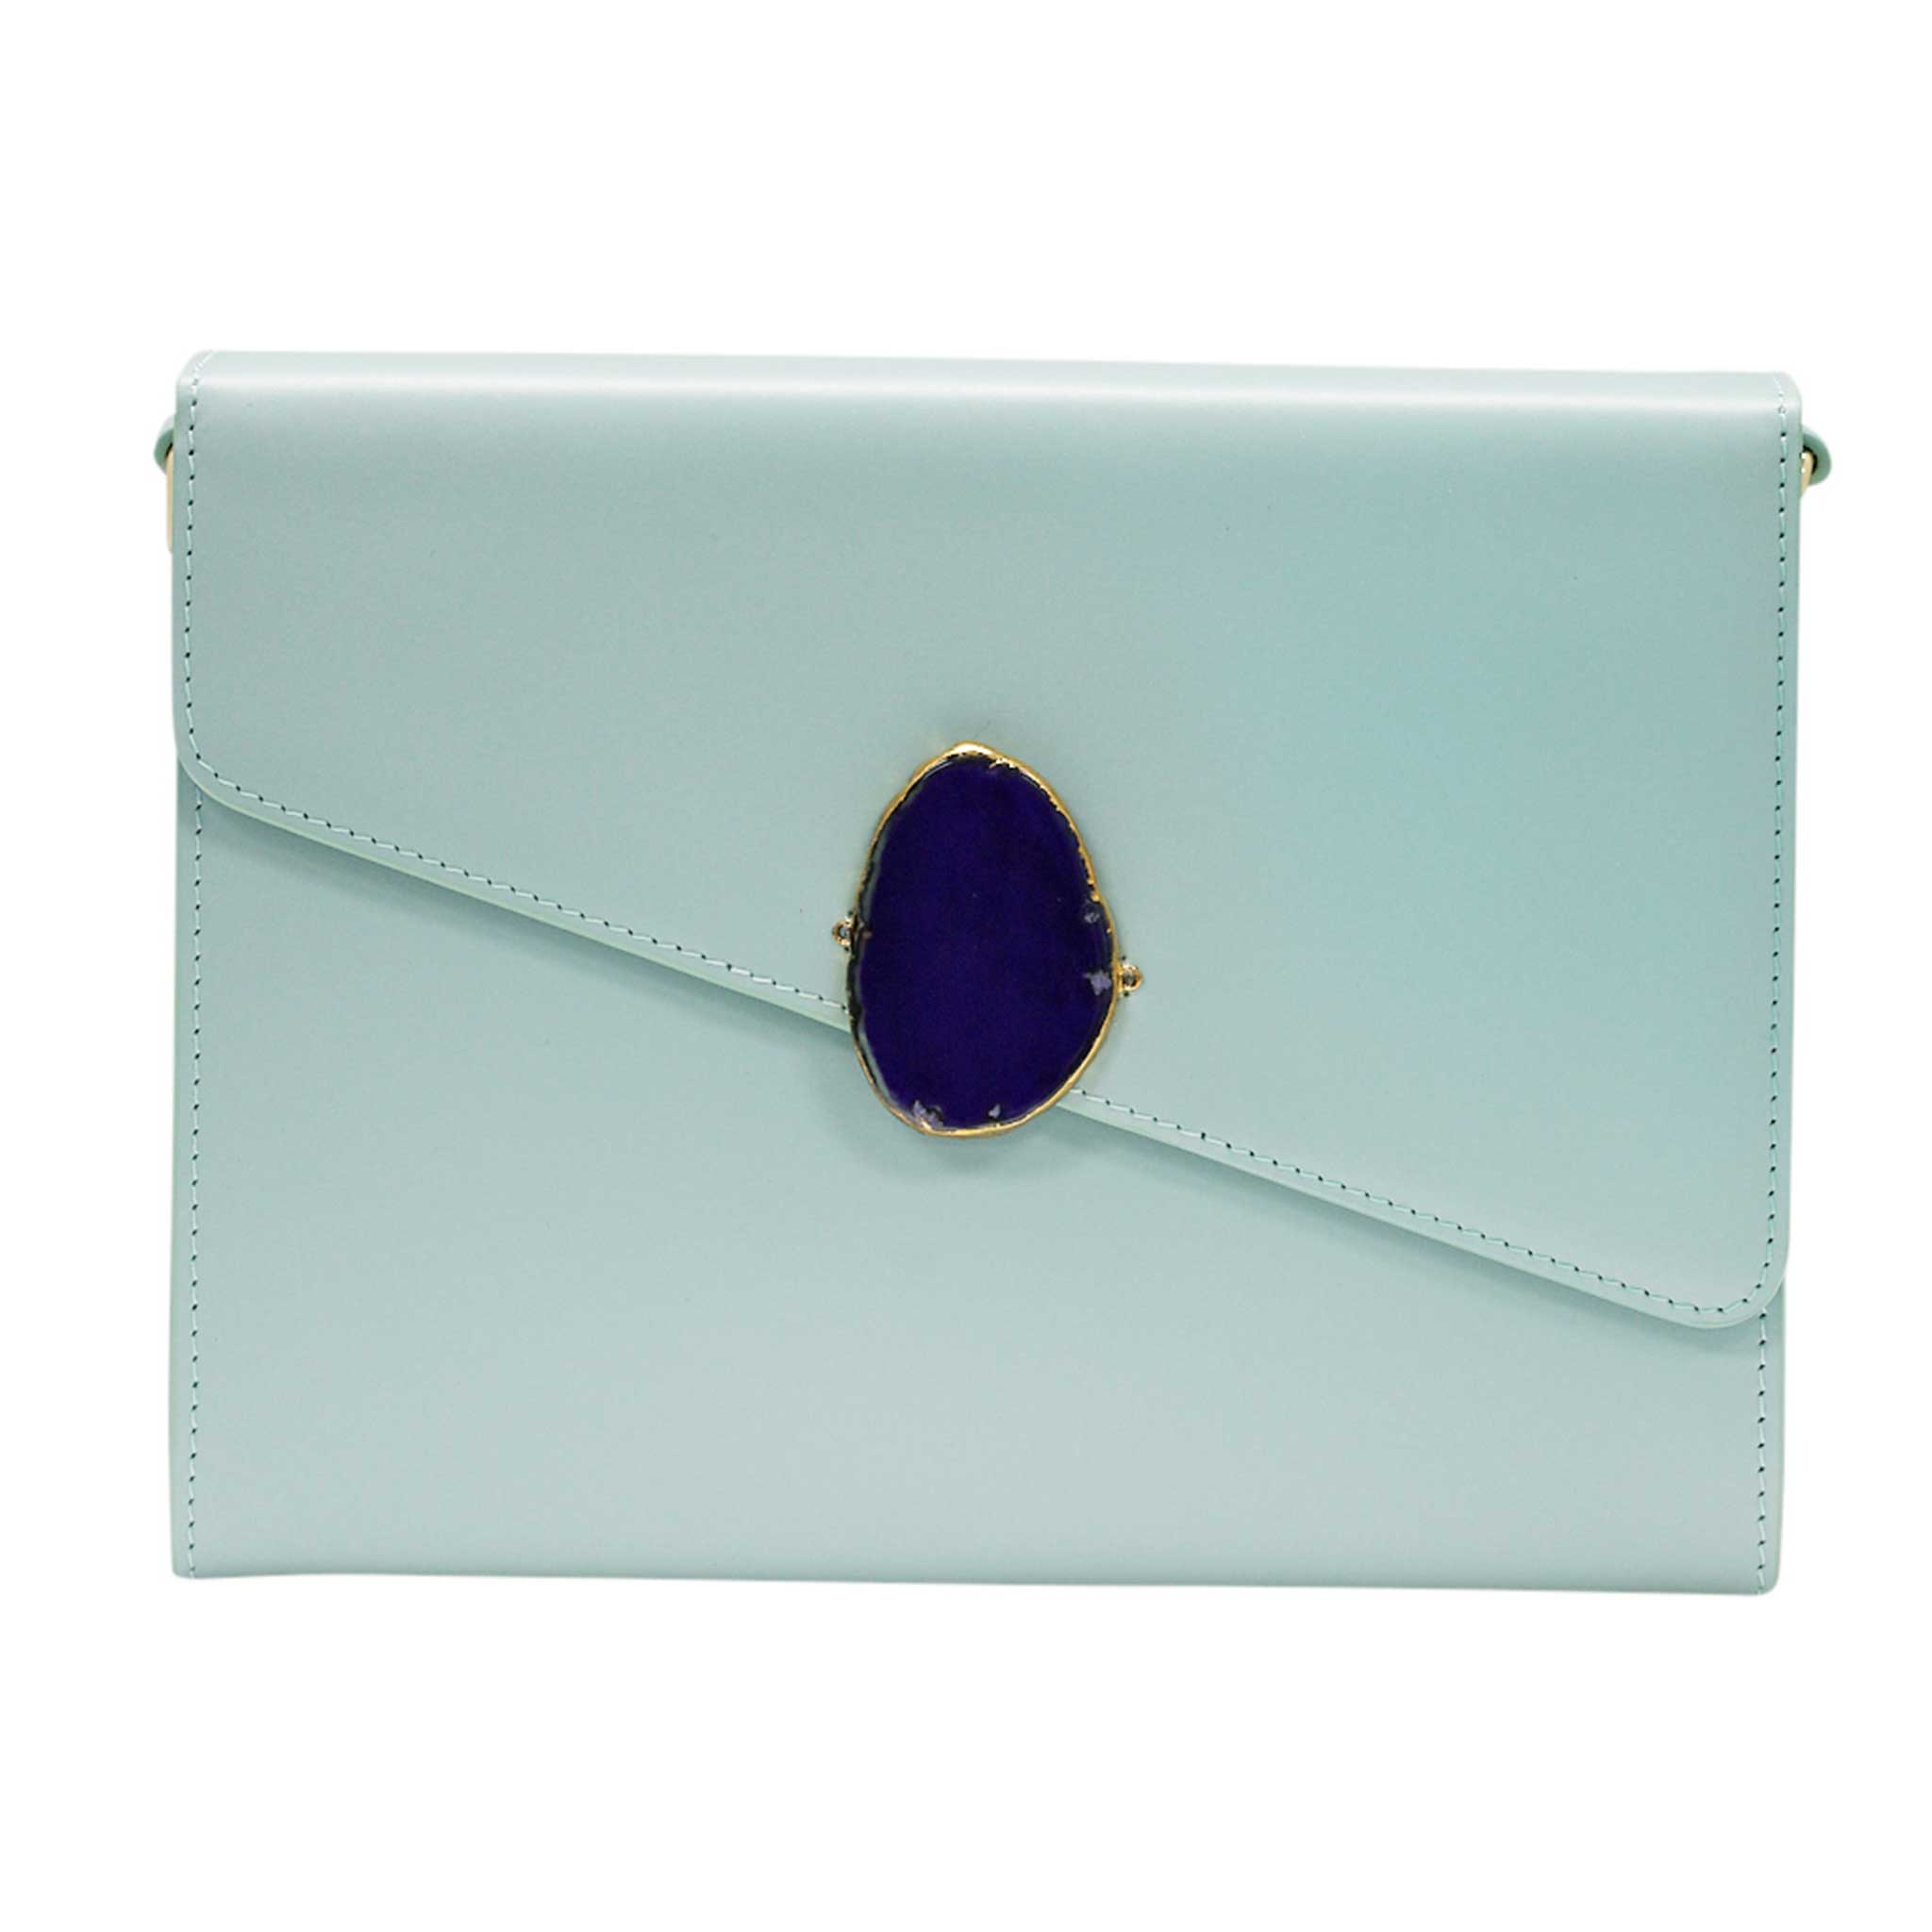 LOVED BAG - MOONSTONE WHITE LEATHER WITH BLUE AGATE - 1.02.006.053